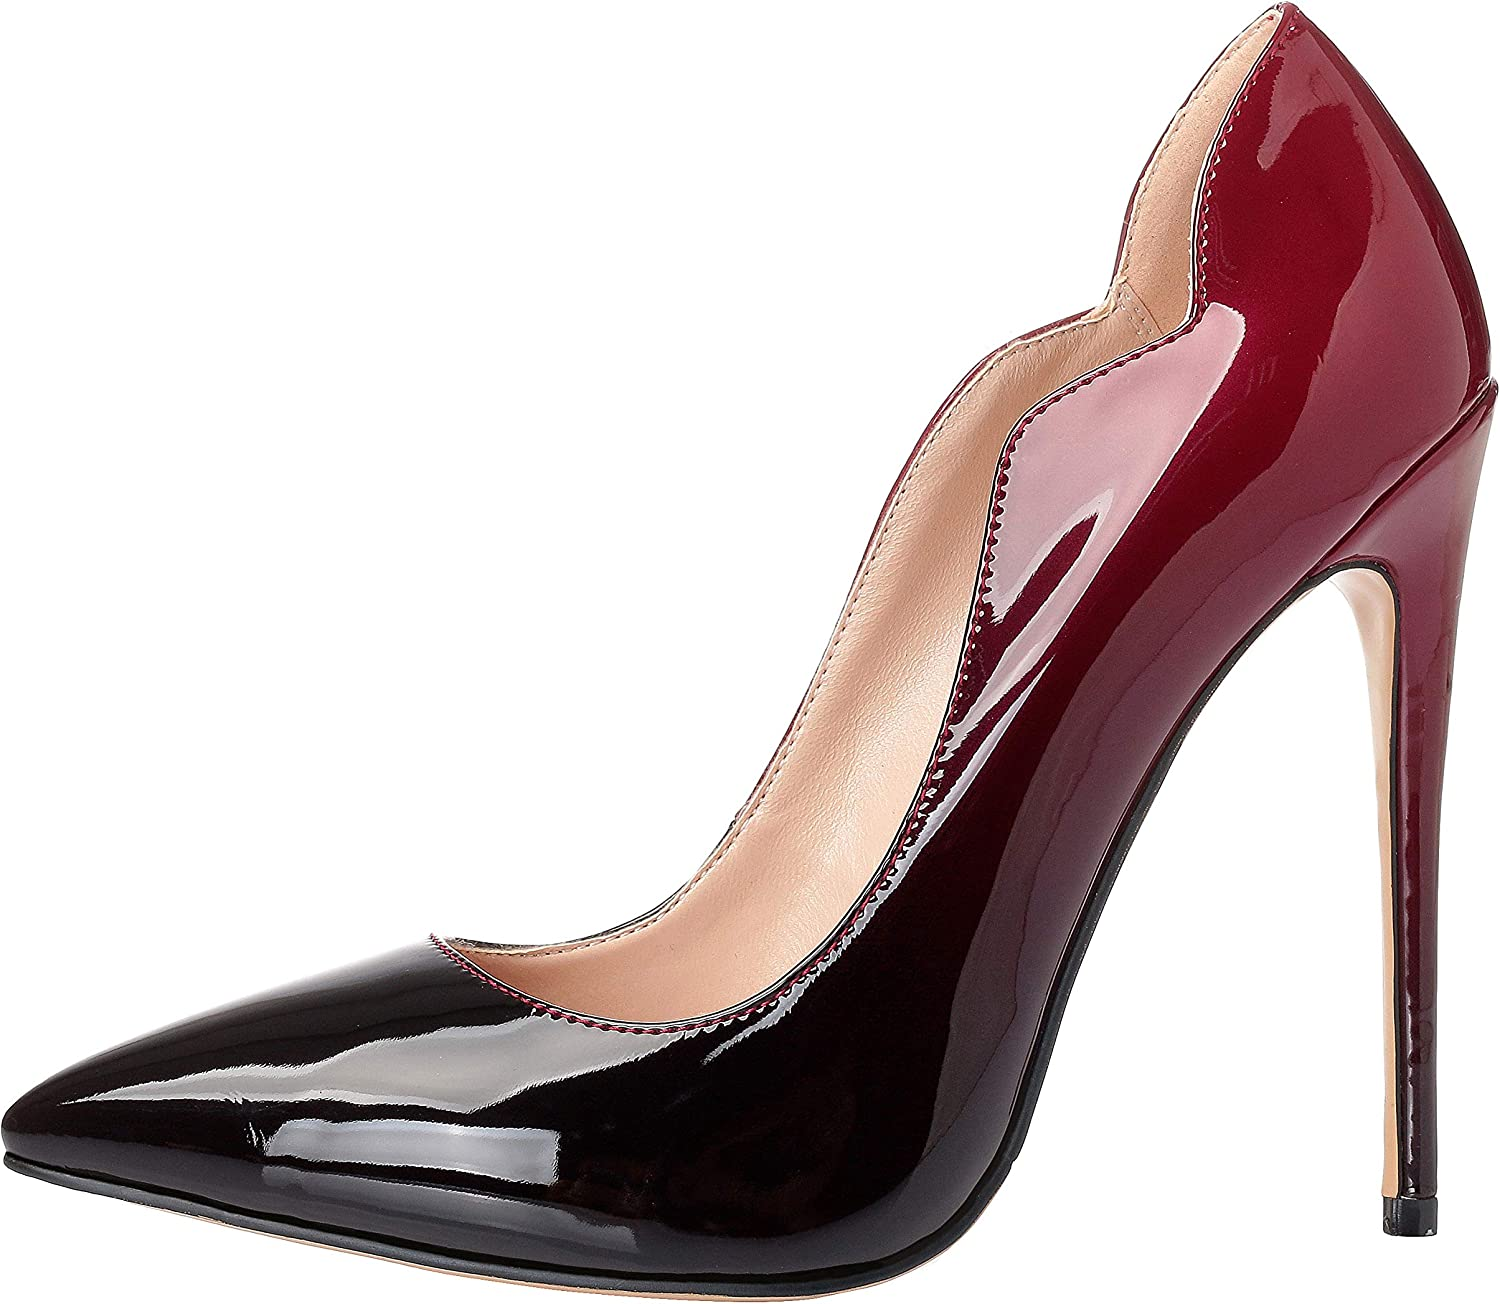 Marhee Pointed Toe High Heel Slip On Stiletto Pumps Wedding Party Basic shoes 12cm(Approx 4.72inch)